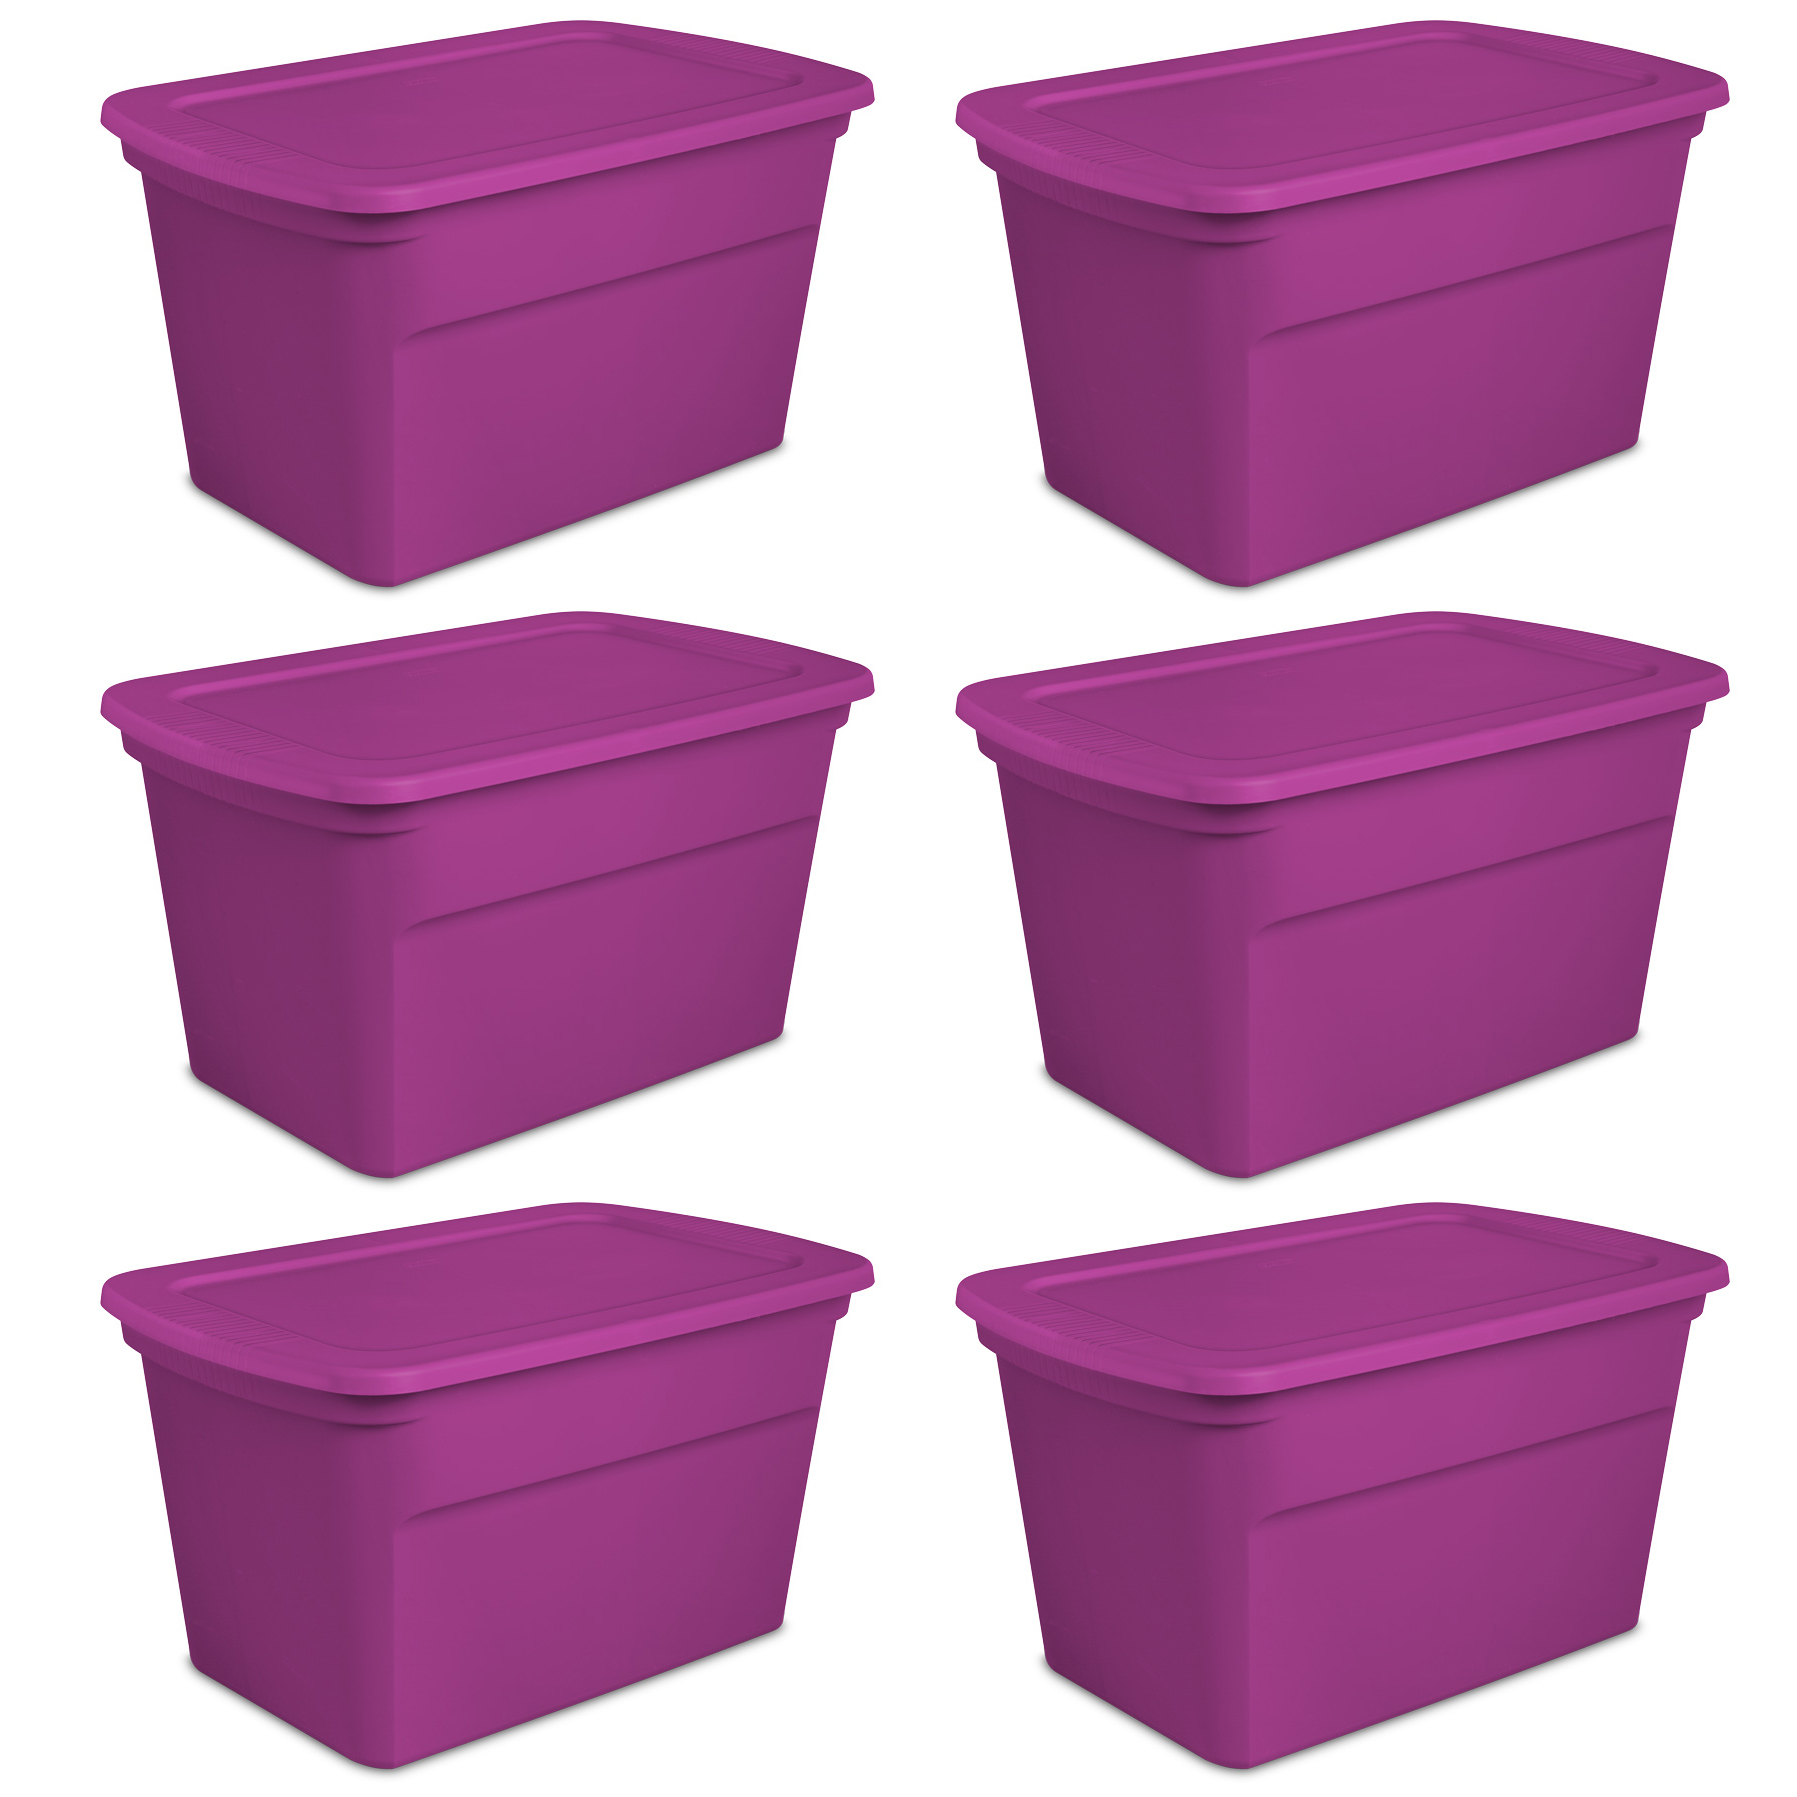 Sterilite 30 Gallon Plastic Storage Tote, Fuchsia Flight (6 Pack) | 17364W06